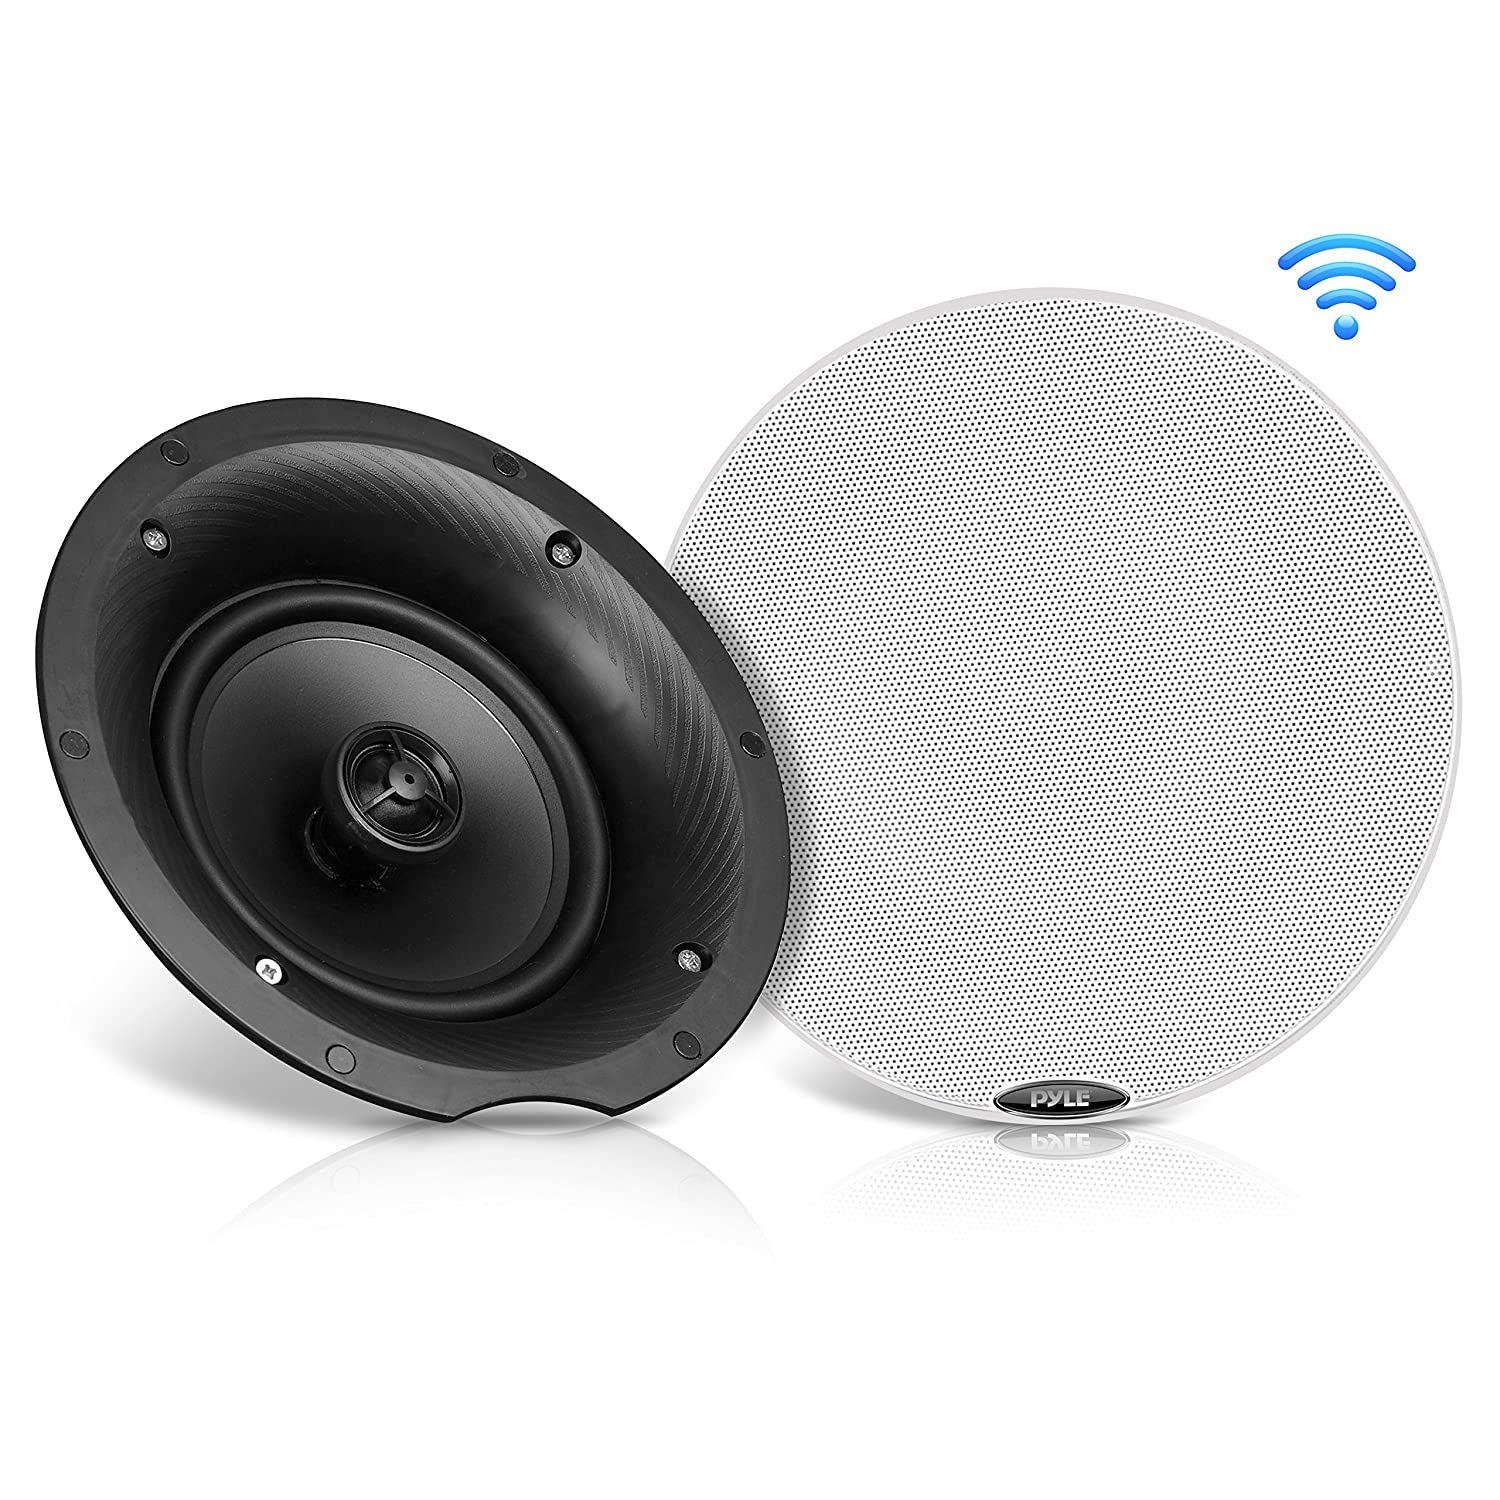 """Pyle 5.25""""  Pair Bluetooth Universal Flush Mount In-wall In-ceiling 2-Way Speaker System Dual Polypropylene Cone & Polymer Tweeter Stereo Sound 240 Watts (PDICBT57)"""